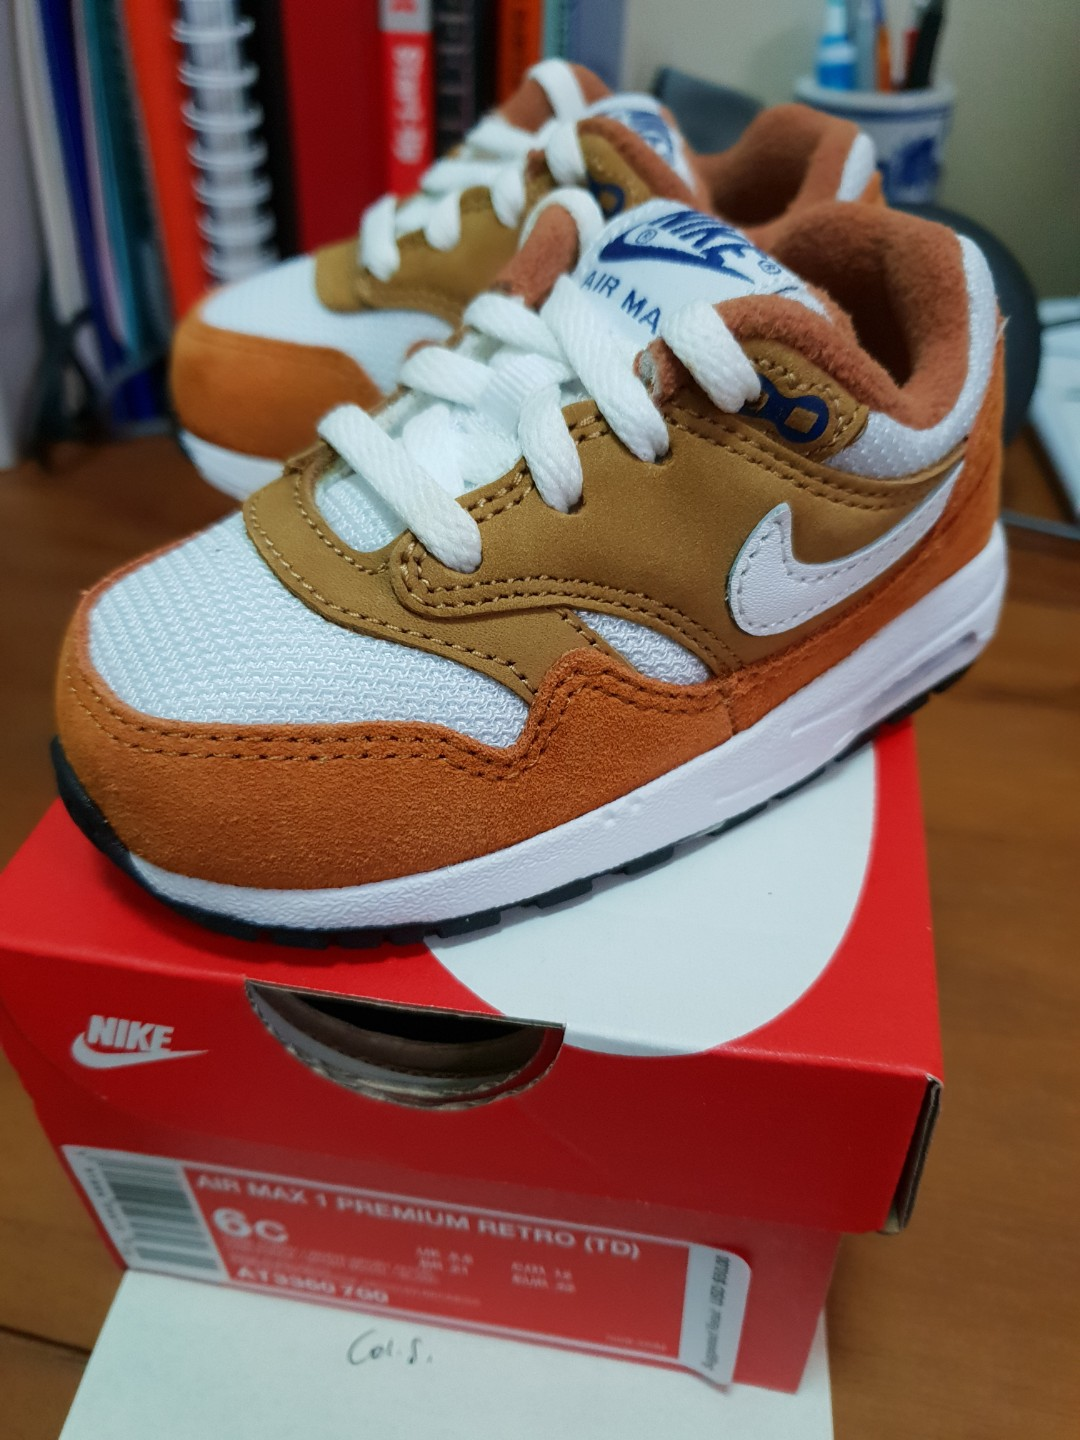 new product 0a6cc 991ba Nike Air Max 1 Premium Retro Curry, Babies   Kids, Babies Apparel on ...